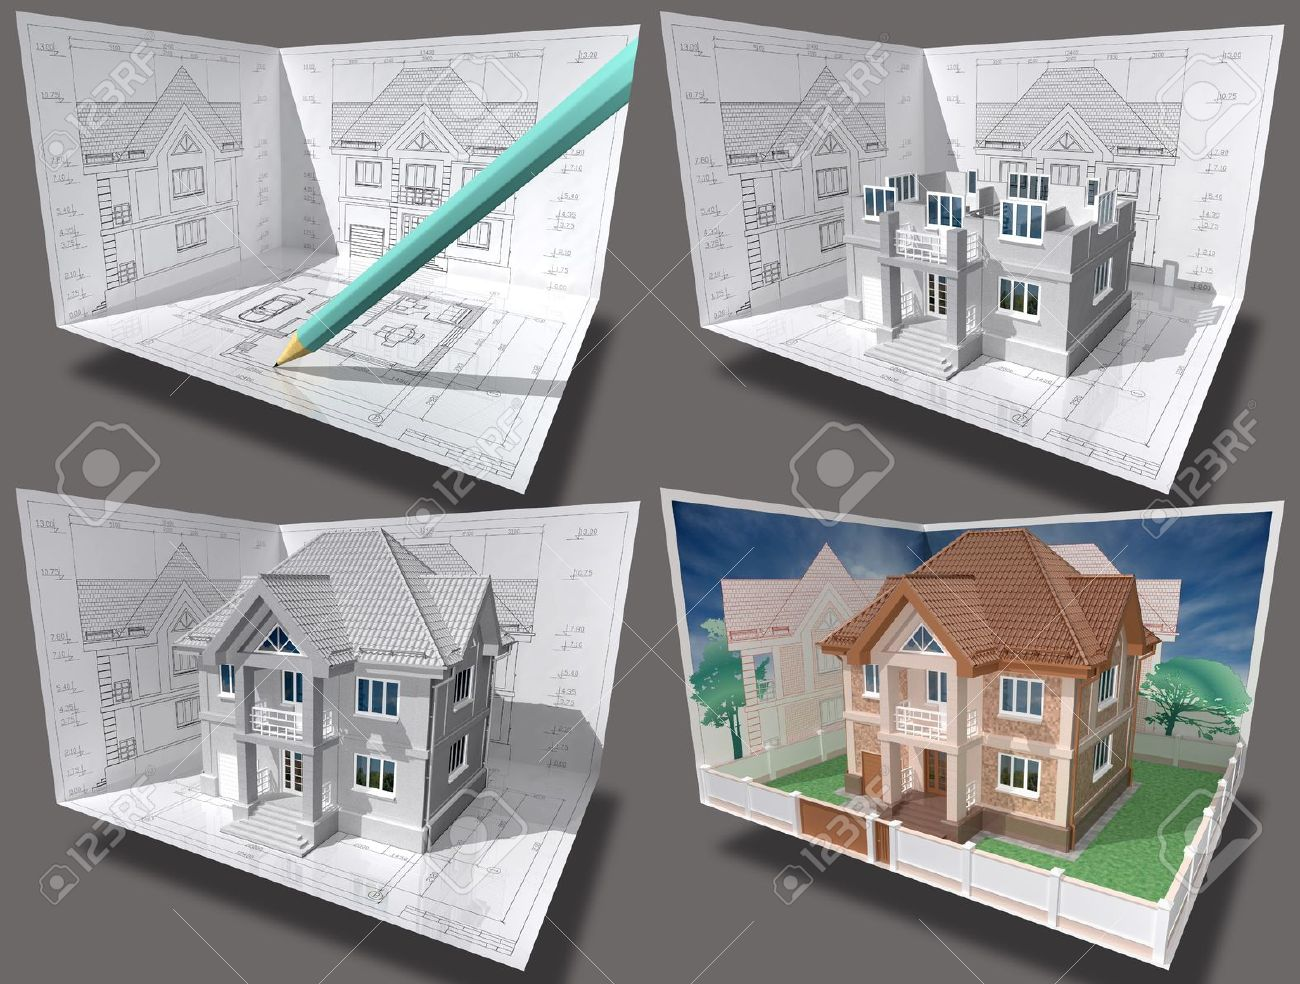 Balcony plans cottage under construction 3d isometric view of residential house on architect drawing